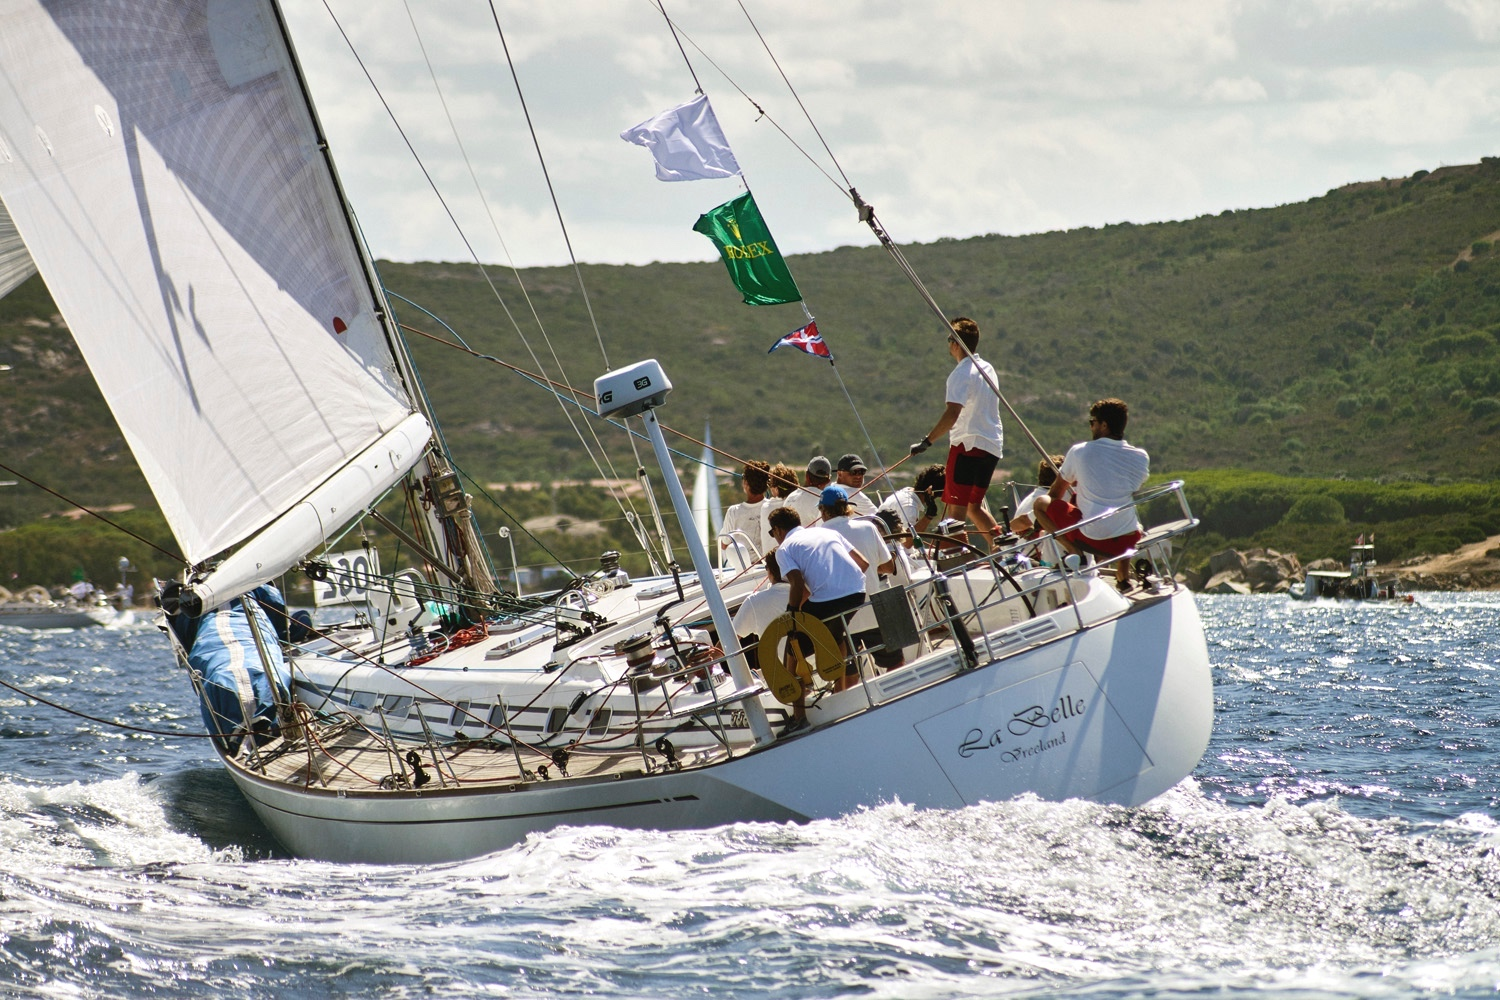 RACING SAILS - FIND OUT MORE